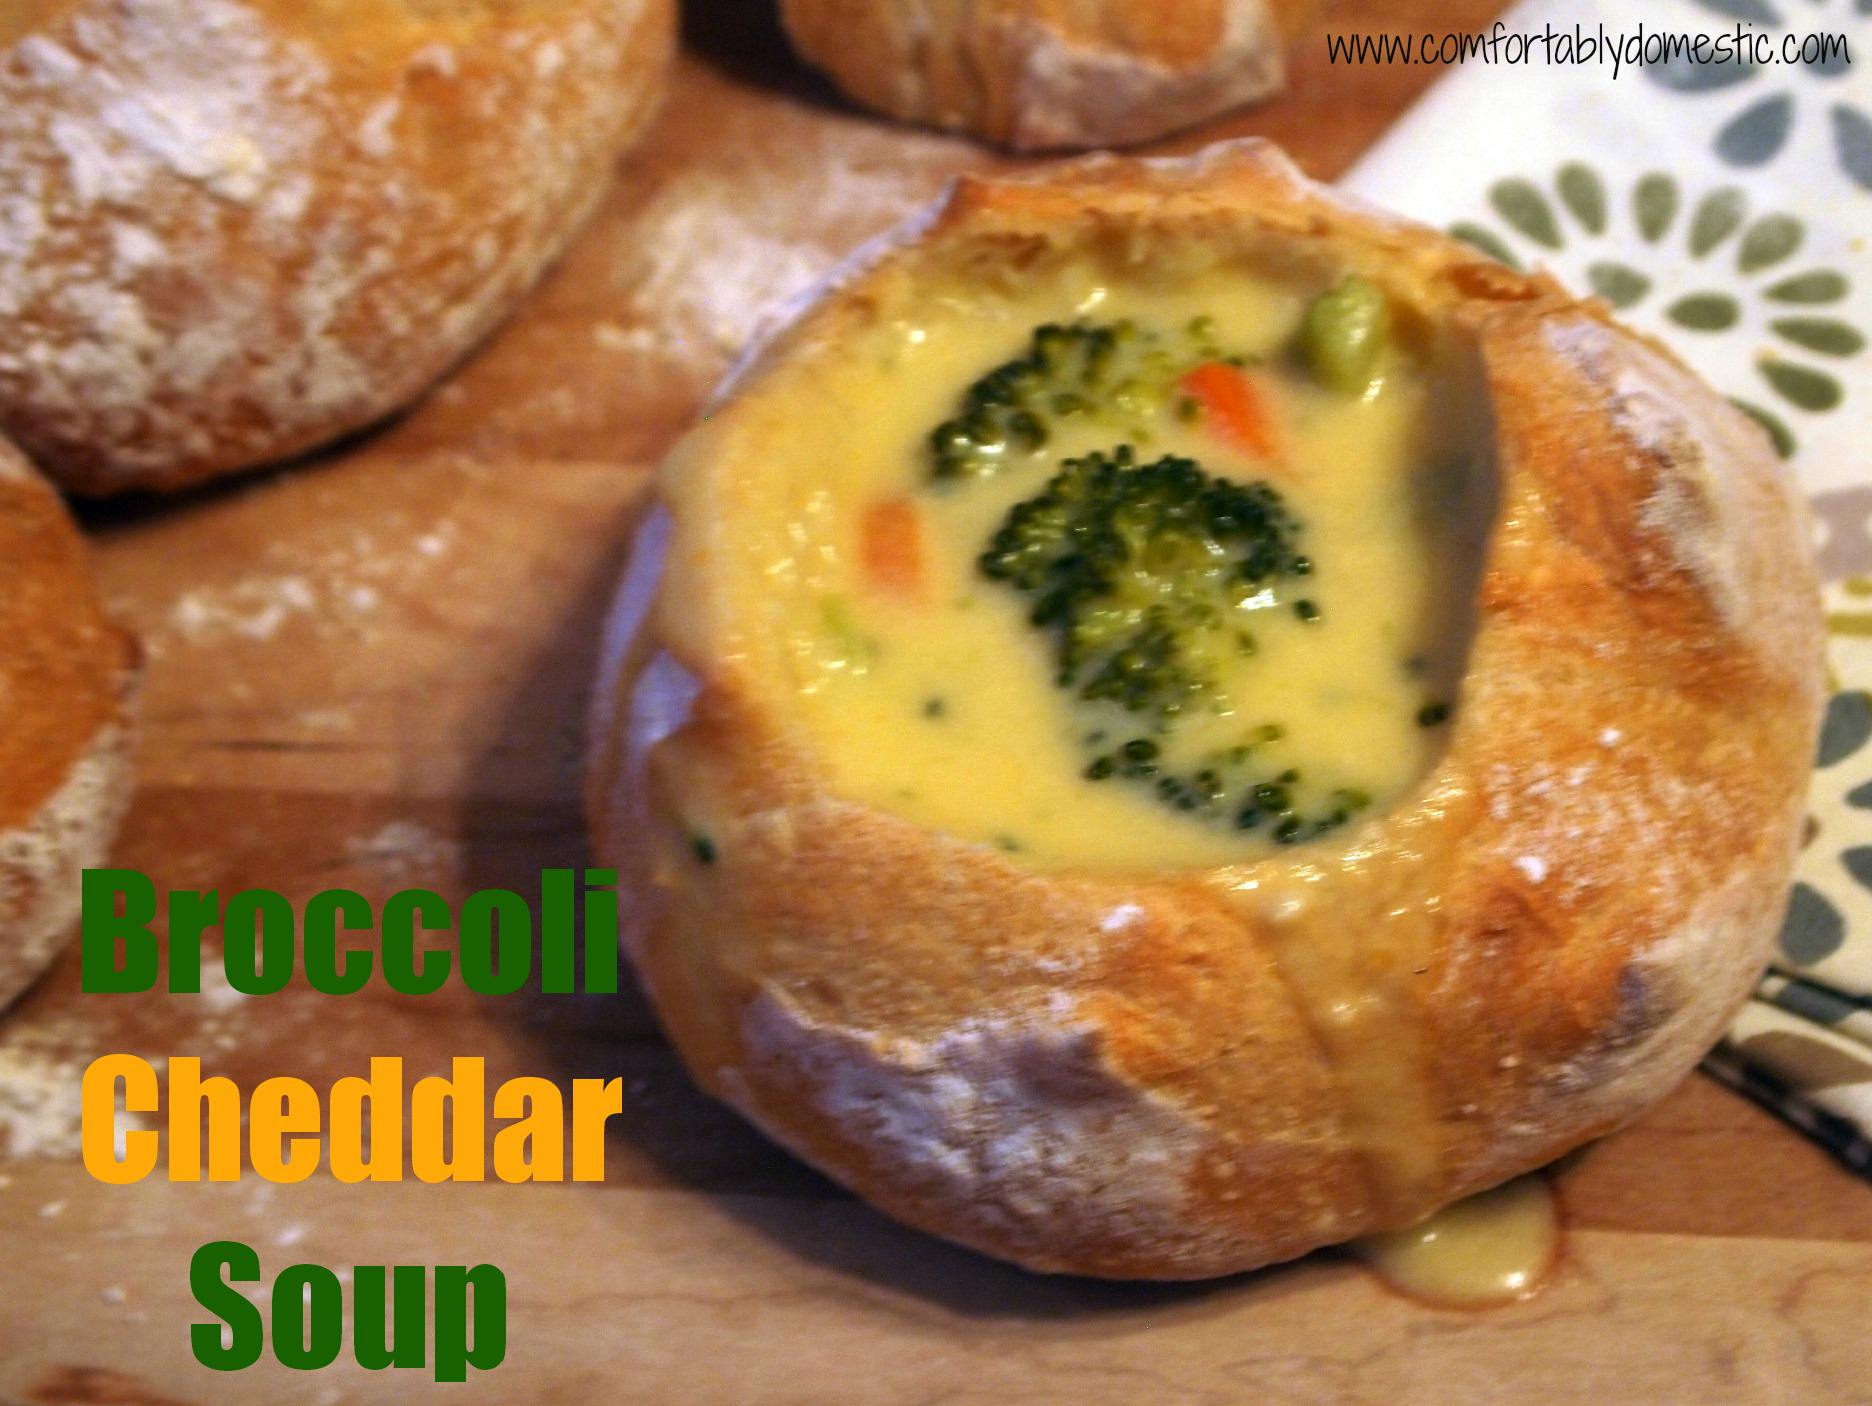 Broccoli Cheddar Soup with Artisan Bread Bowls - Comfortably Domestic